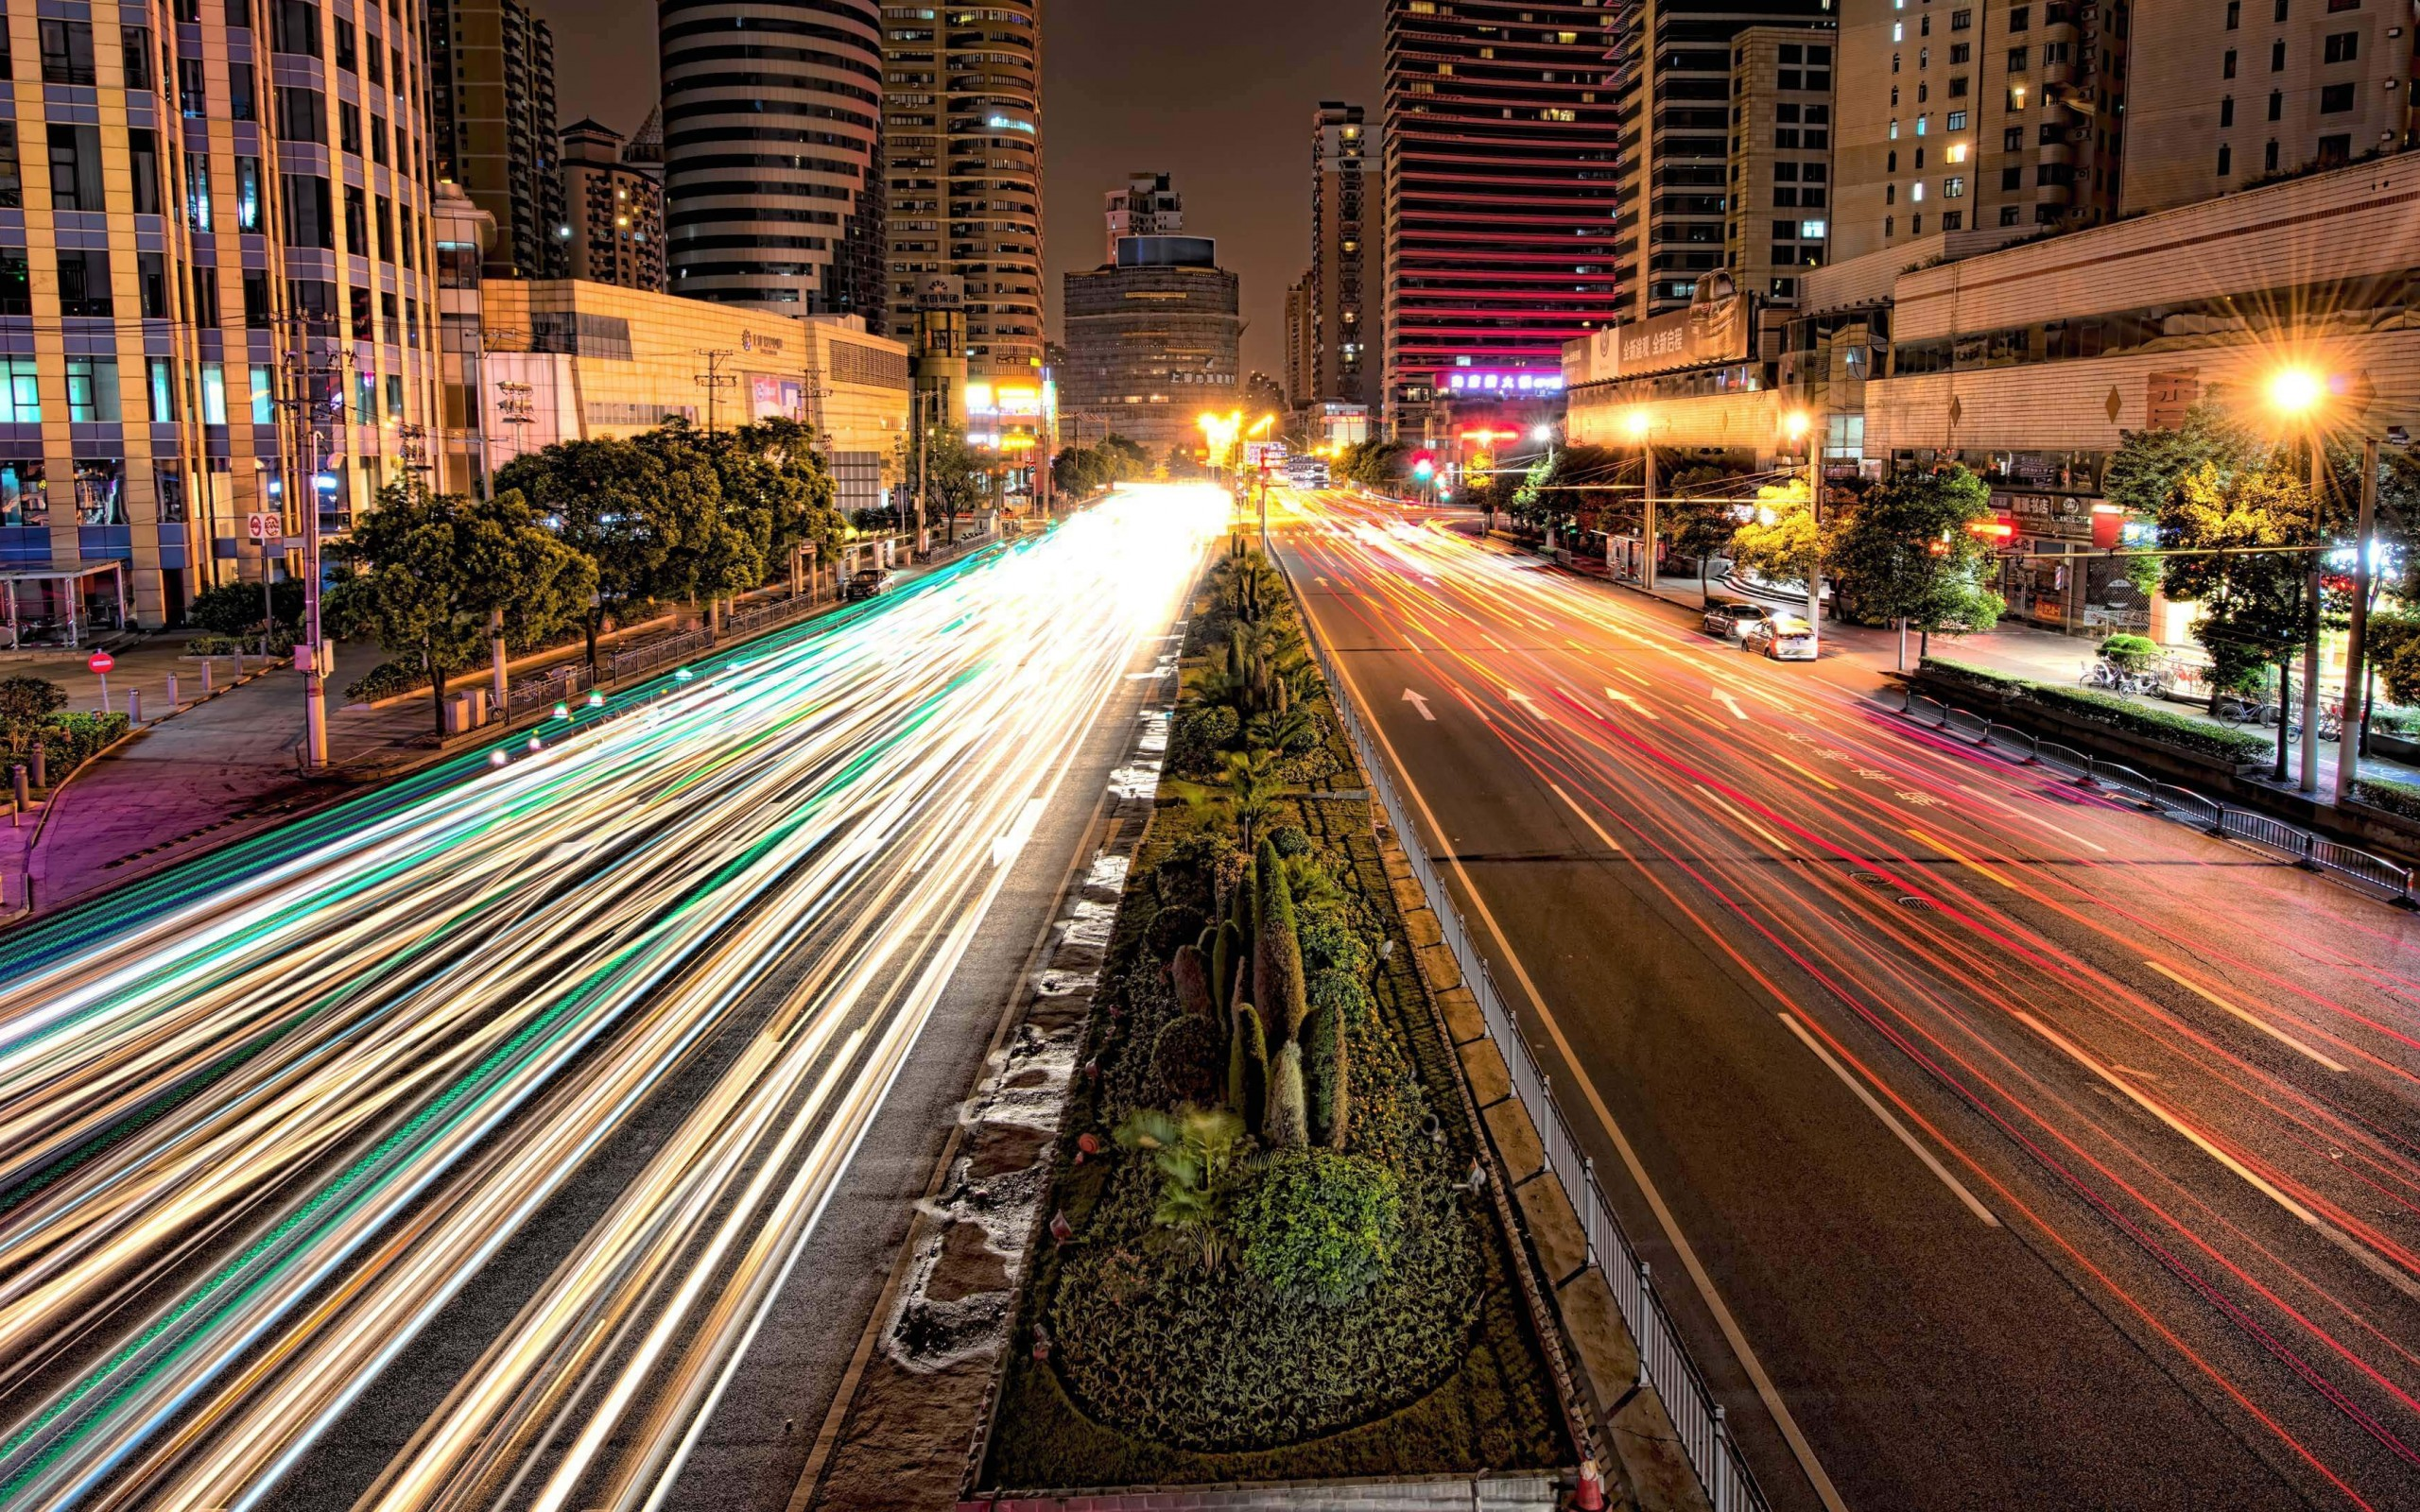 Busy Road in Shanghai at Night Wallpaper for Desktop 2560x1600